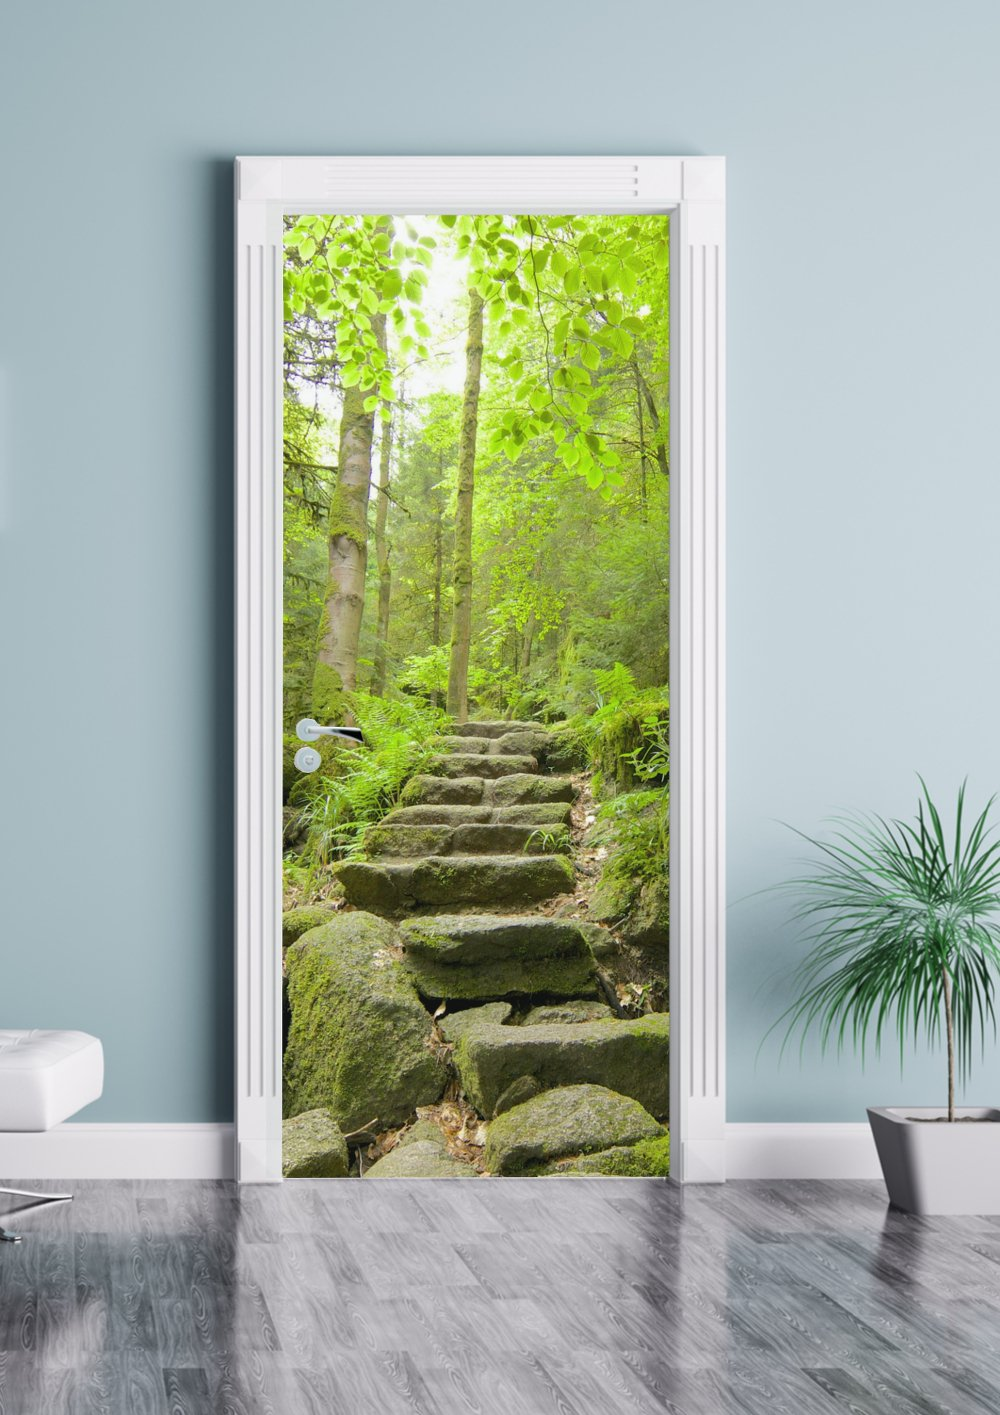 Forest Walk Premium Door Mural Sticker - Matte Vinyl Self Adhesive Reusable WallArt